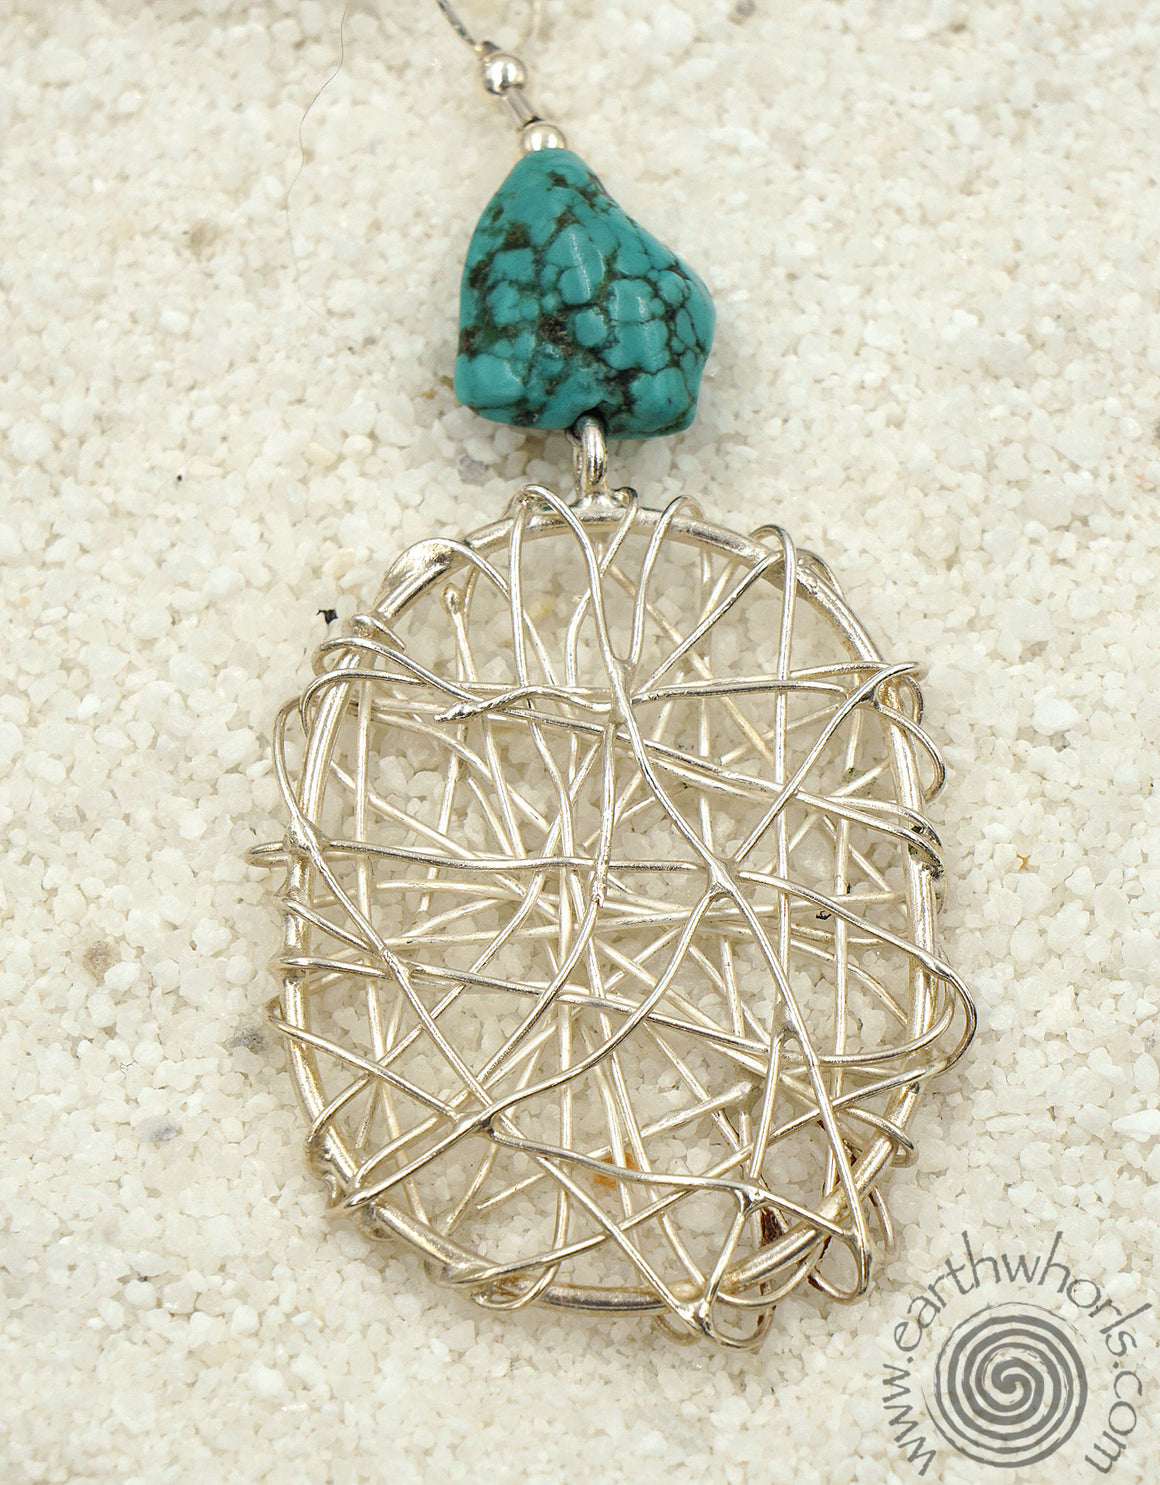 Turquoise & Sterling Silver Pendant Necklace - EarthWhorls, LLC